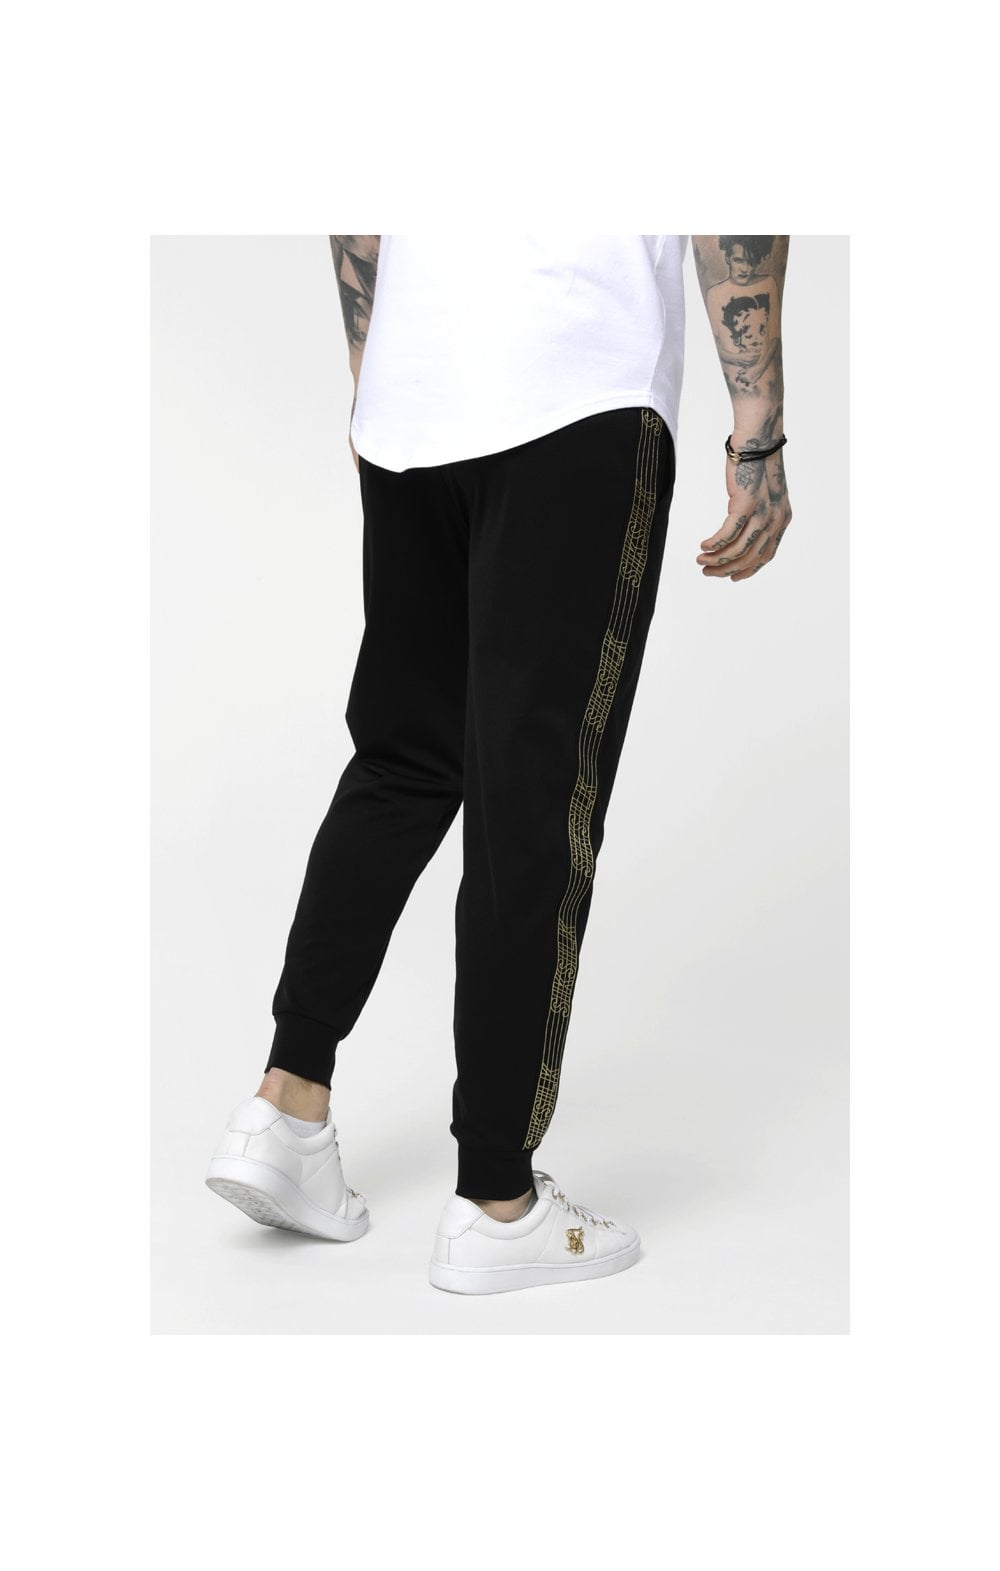 Load image into Gallery viewer, SikSilk Gold Edit Cuffed Cropped Runner Joggers - Black (3)